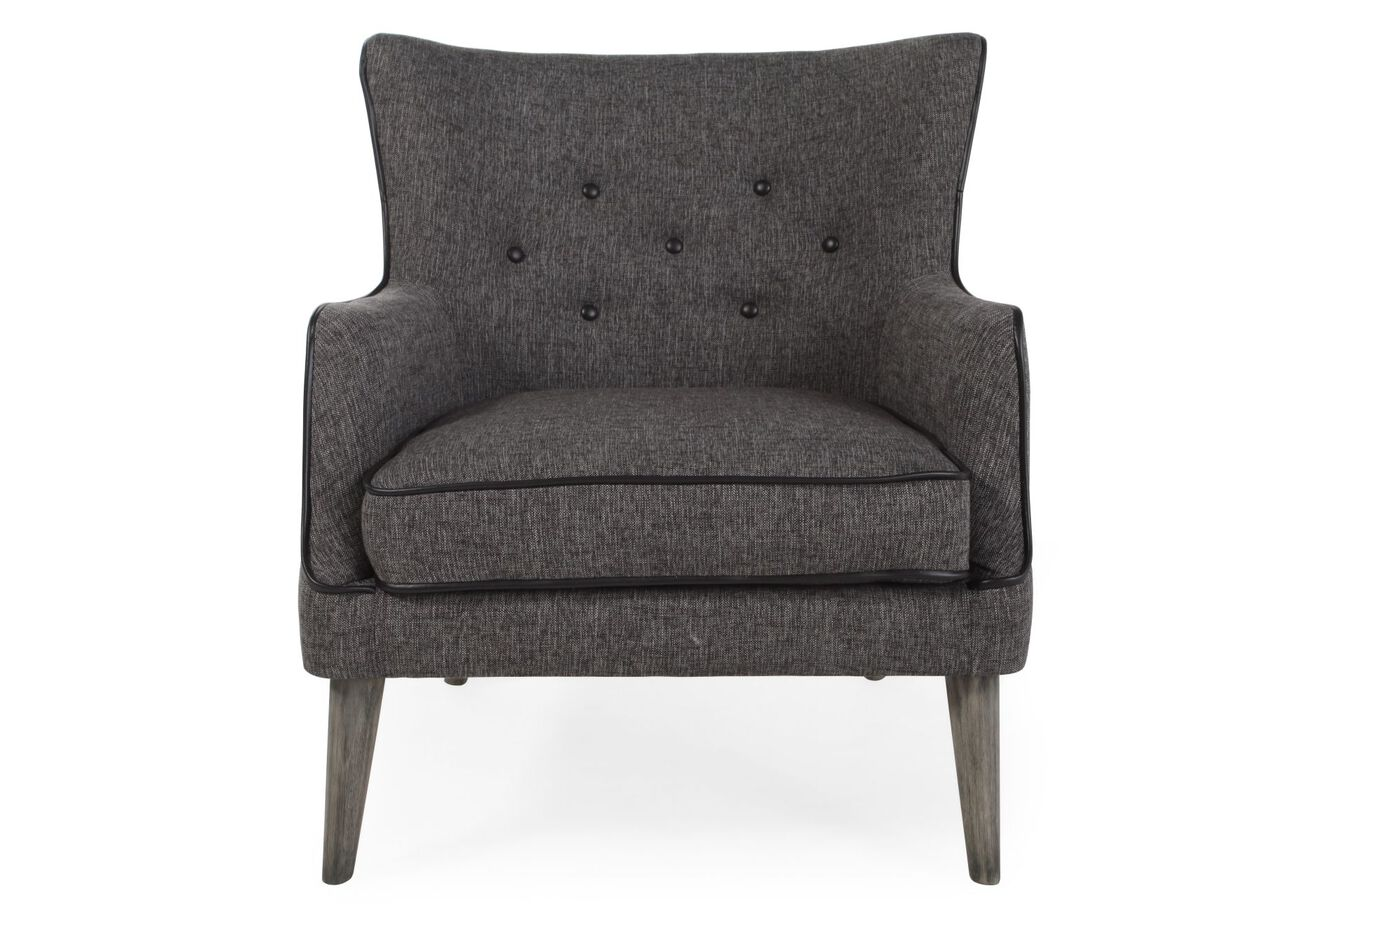 Boulevard Gray Accent Chair. Boulevard Gray Accent Chair   Mathis Brothers Furniture